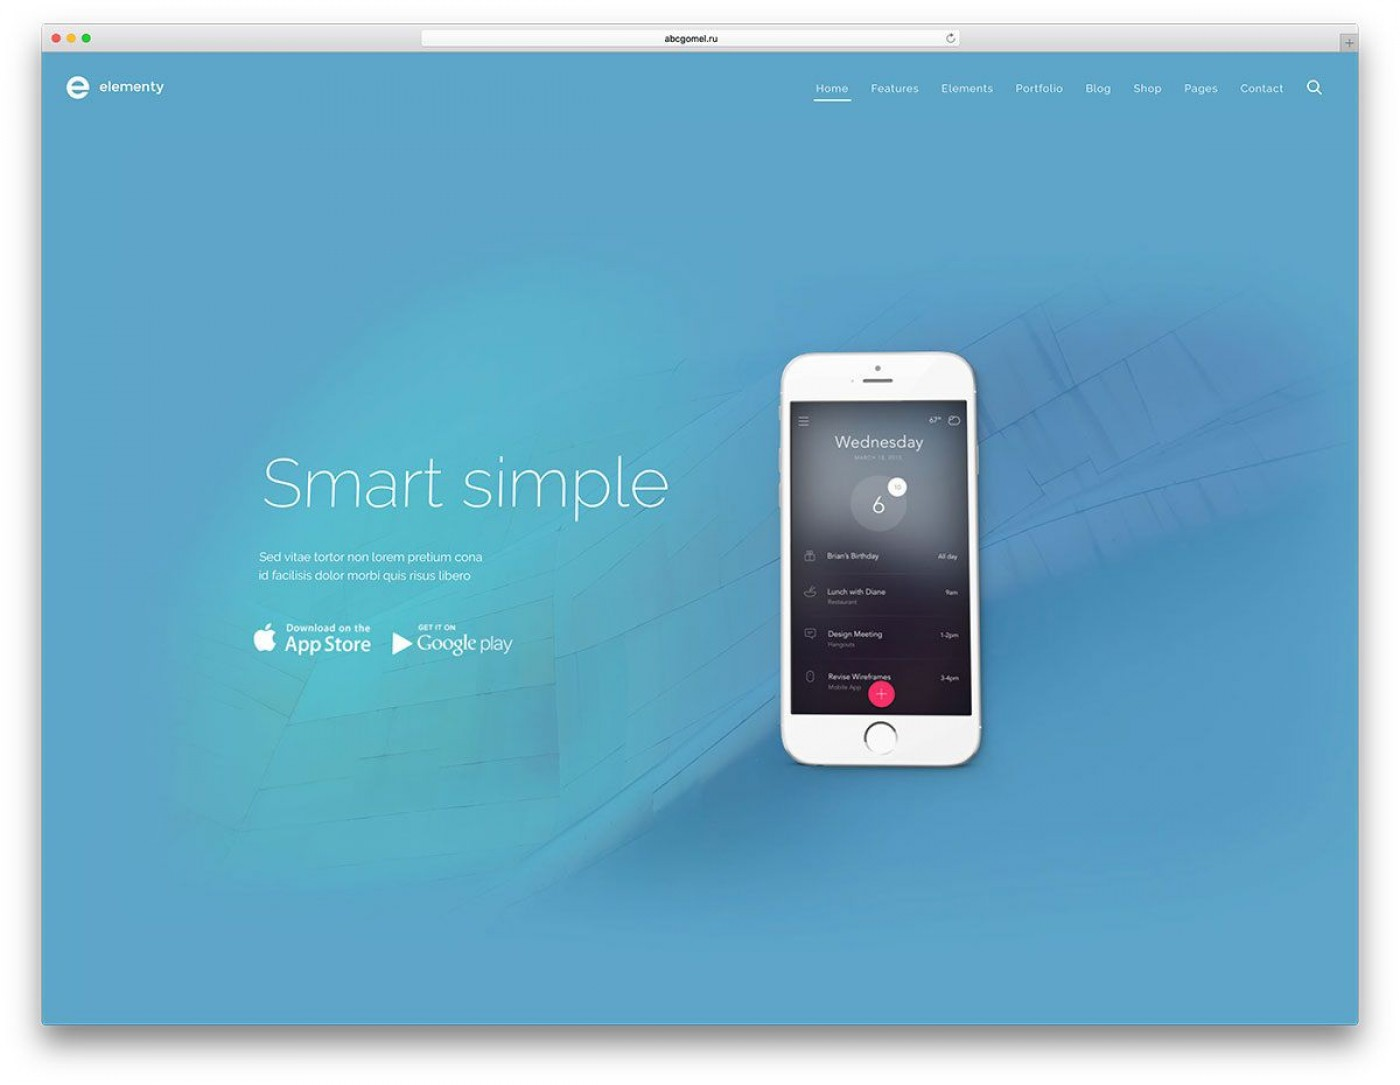 002 Top One Page Website Template Html5 Responsive Free Download High Definition 1400